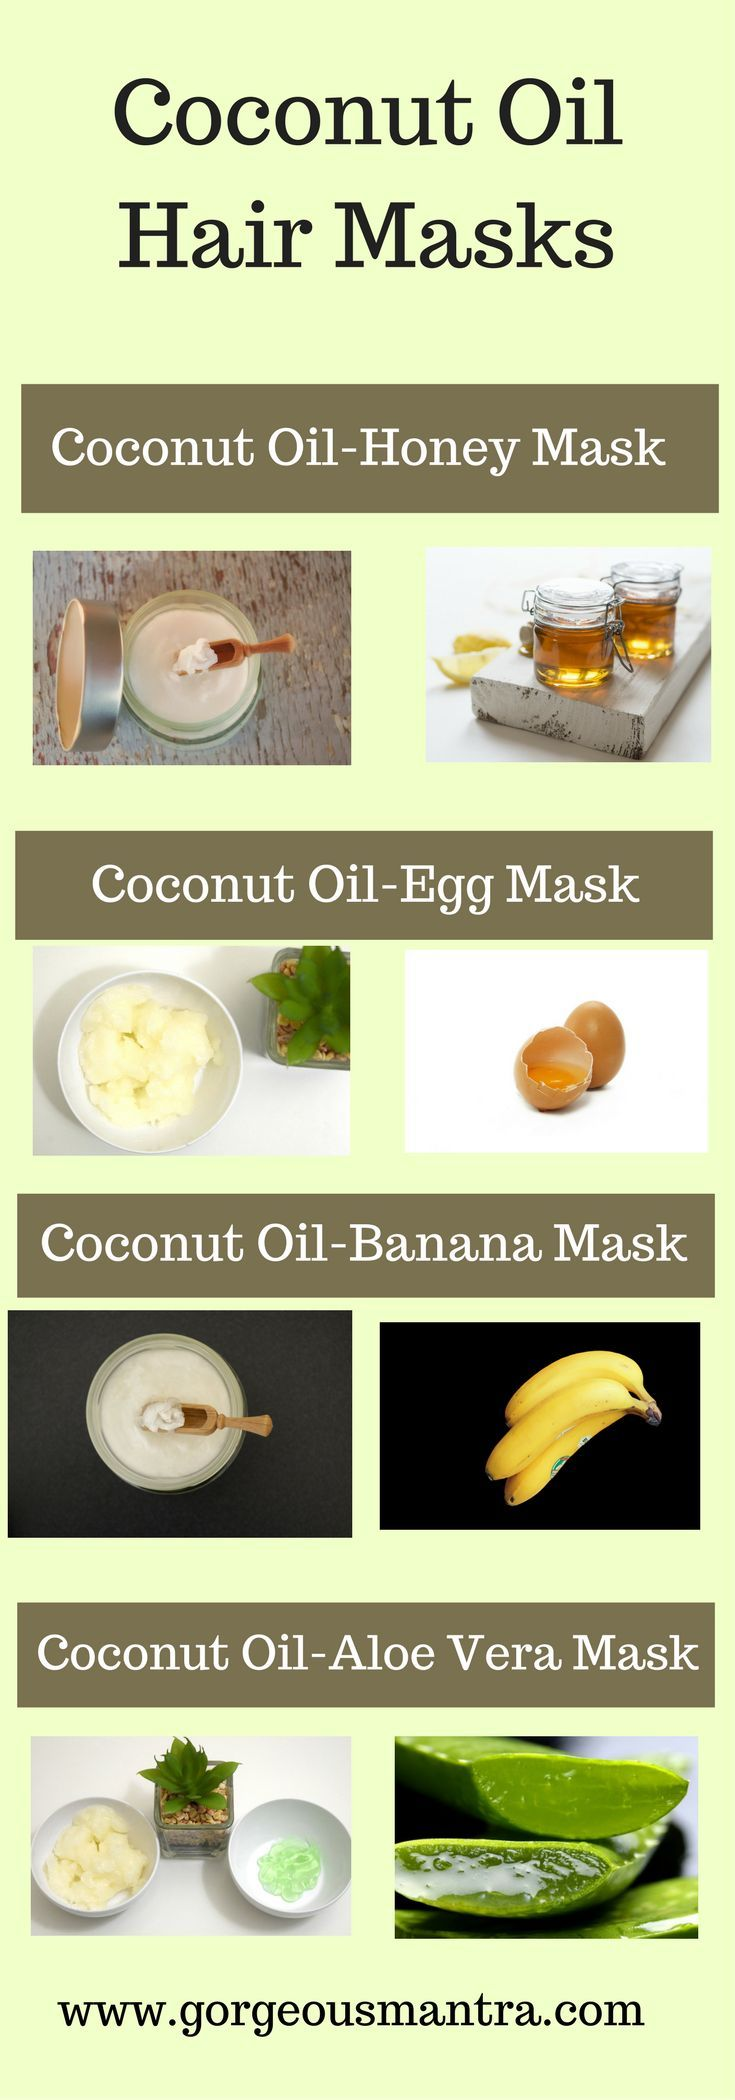 Try these coconut oil hair masks for healthy and beautiful hair. These masks are great for nourishing hair and promoting hair growth.